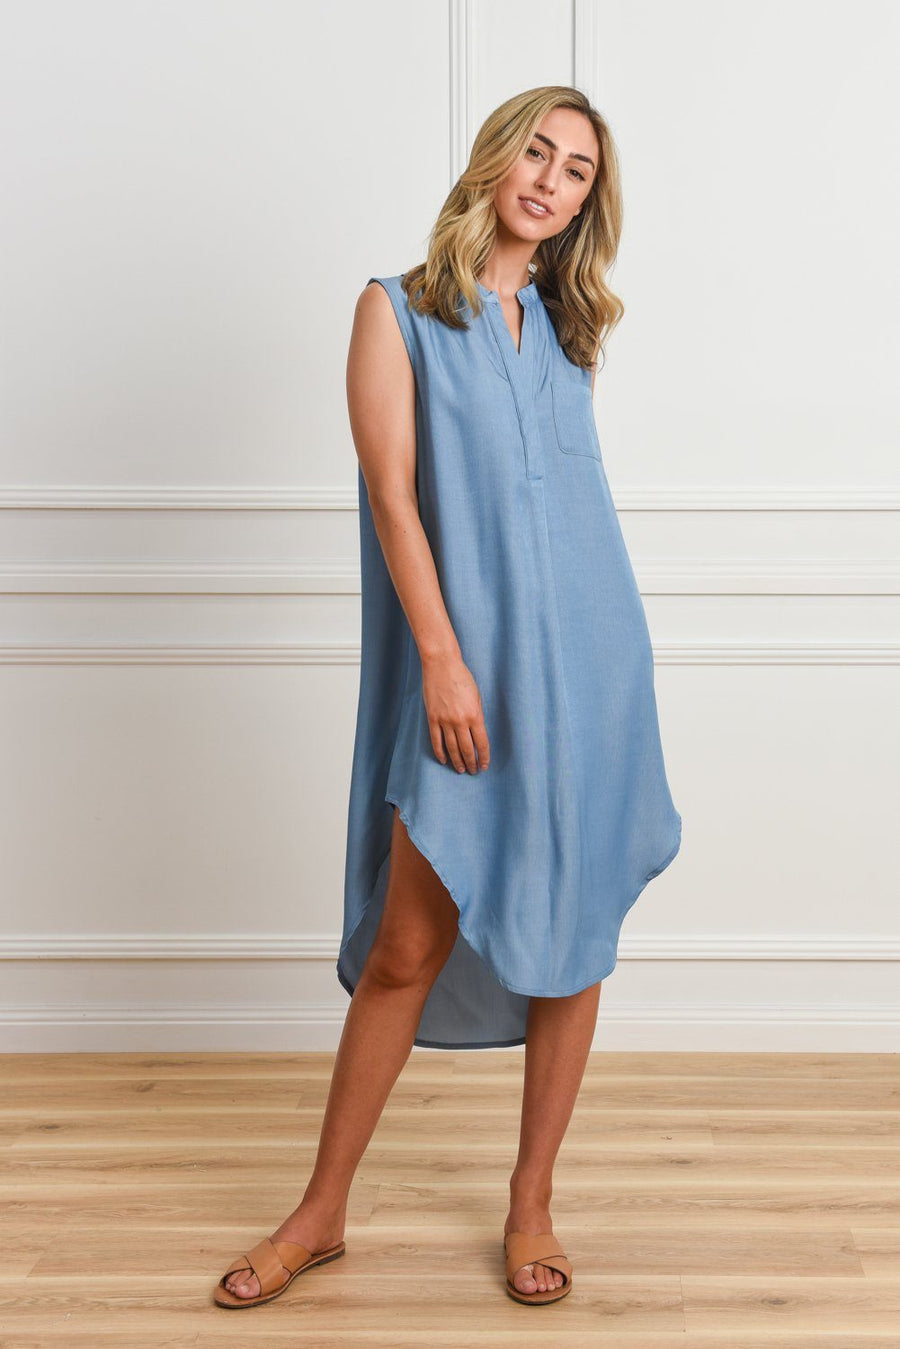 Cindy Shirt Dress | Blue Denimn DRESS Gray.Label